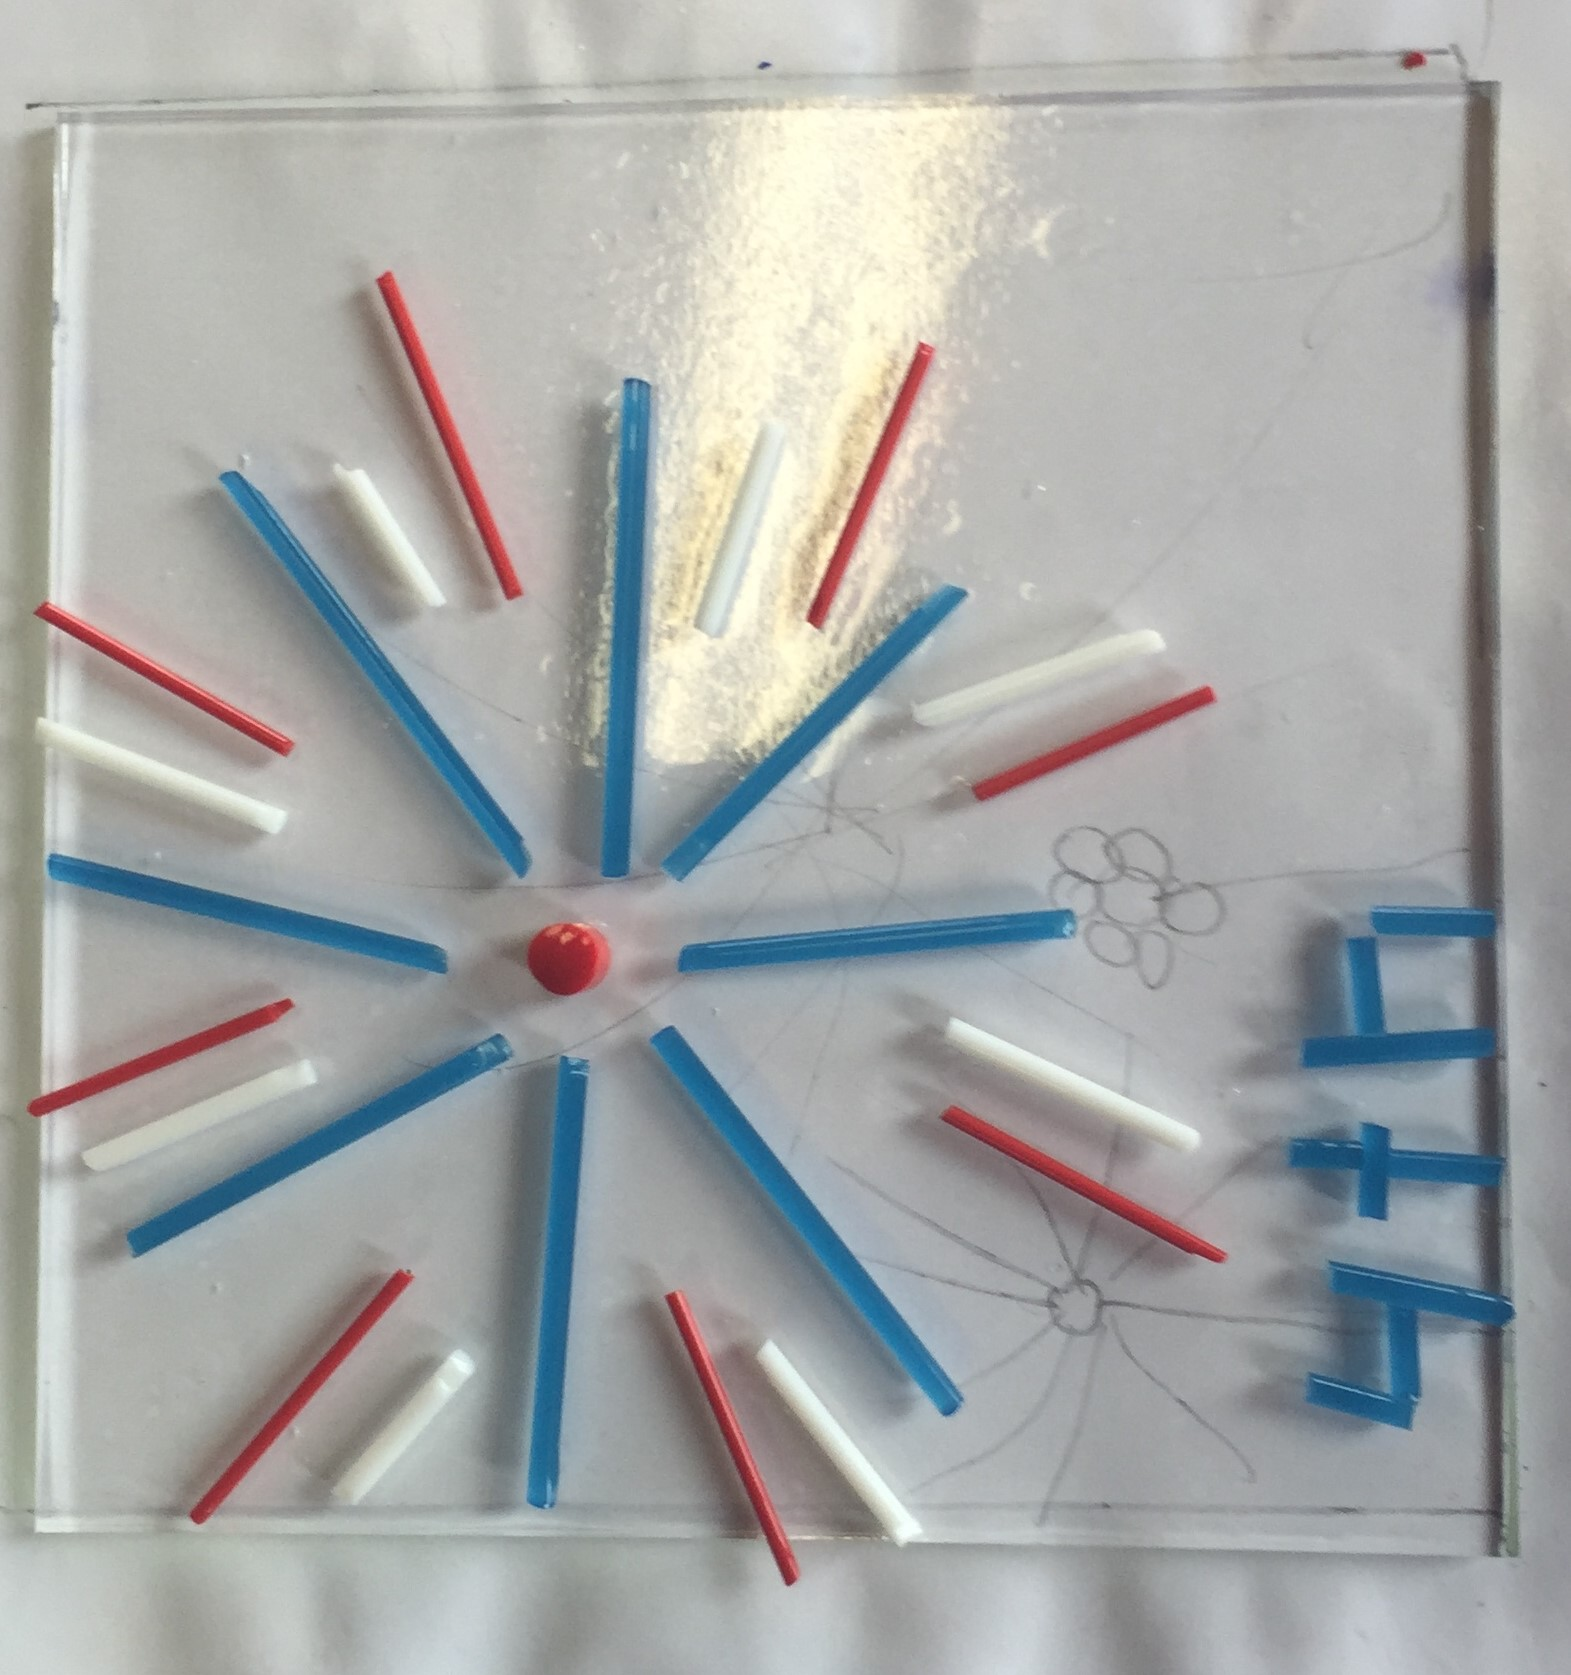 Fused Glass Drawing Tool